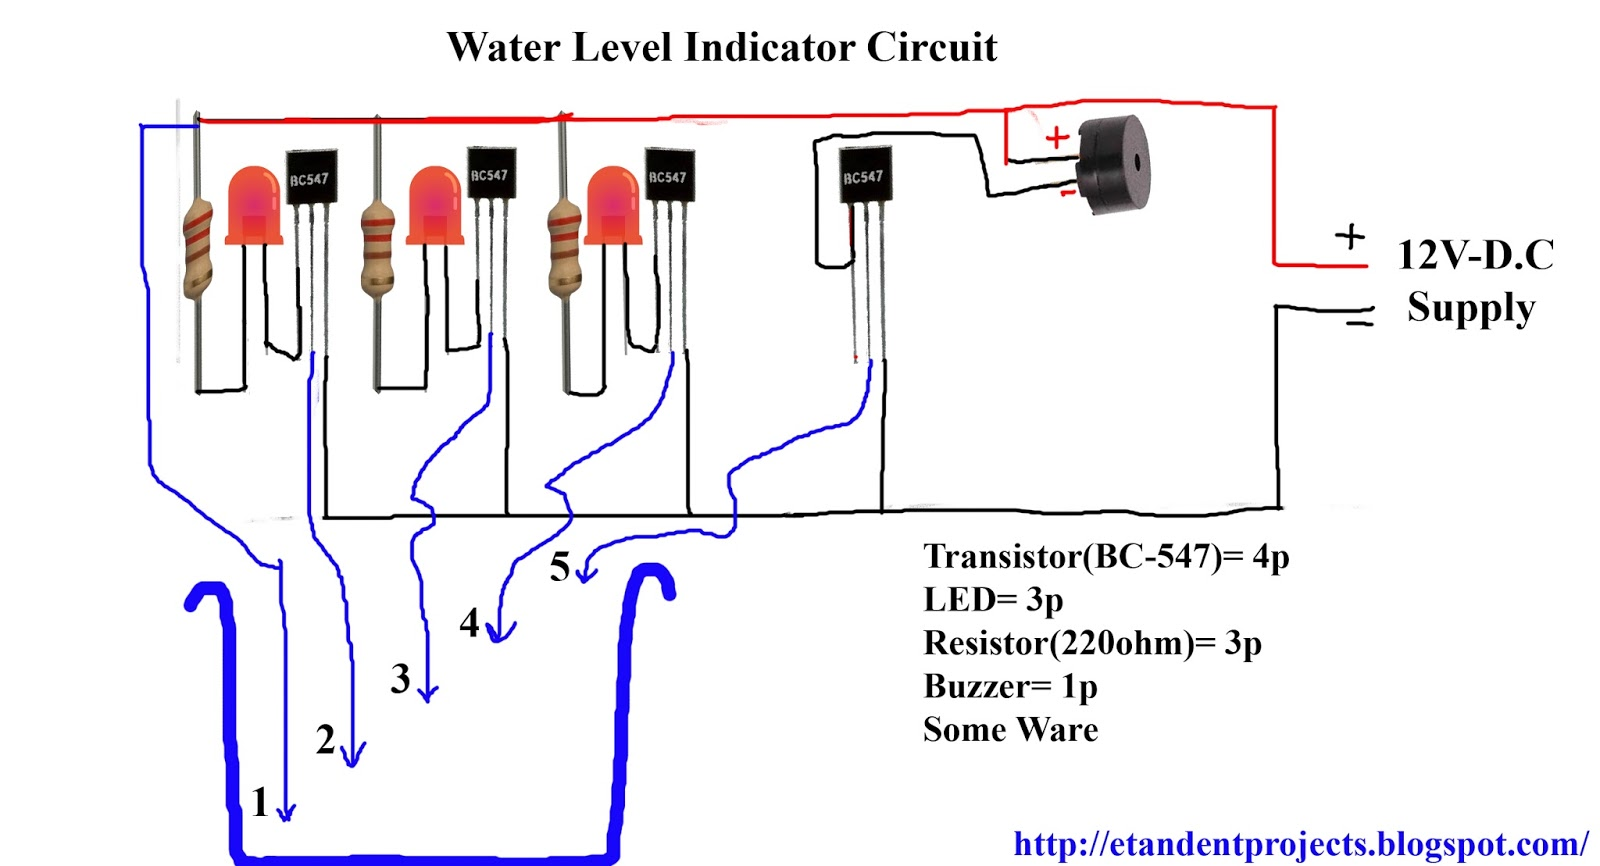 water level indicator circuit diagram et ent project s rh etandentprojects blogspot com water level indicator circuit diagram water level indicator circuit diagram